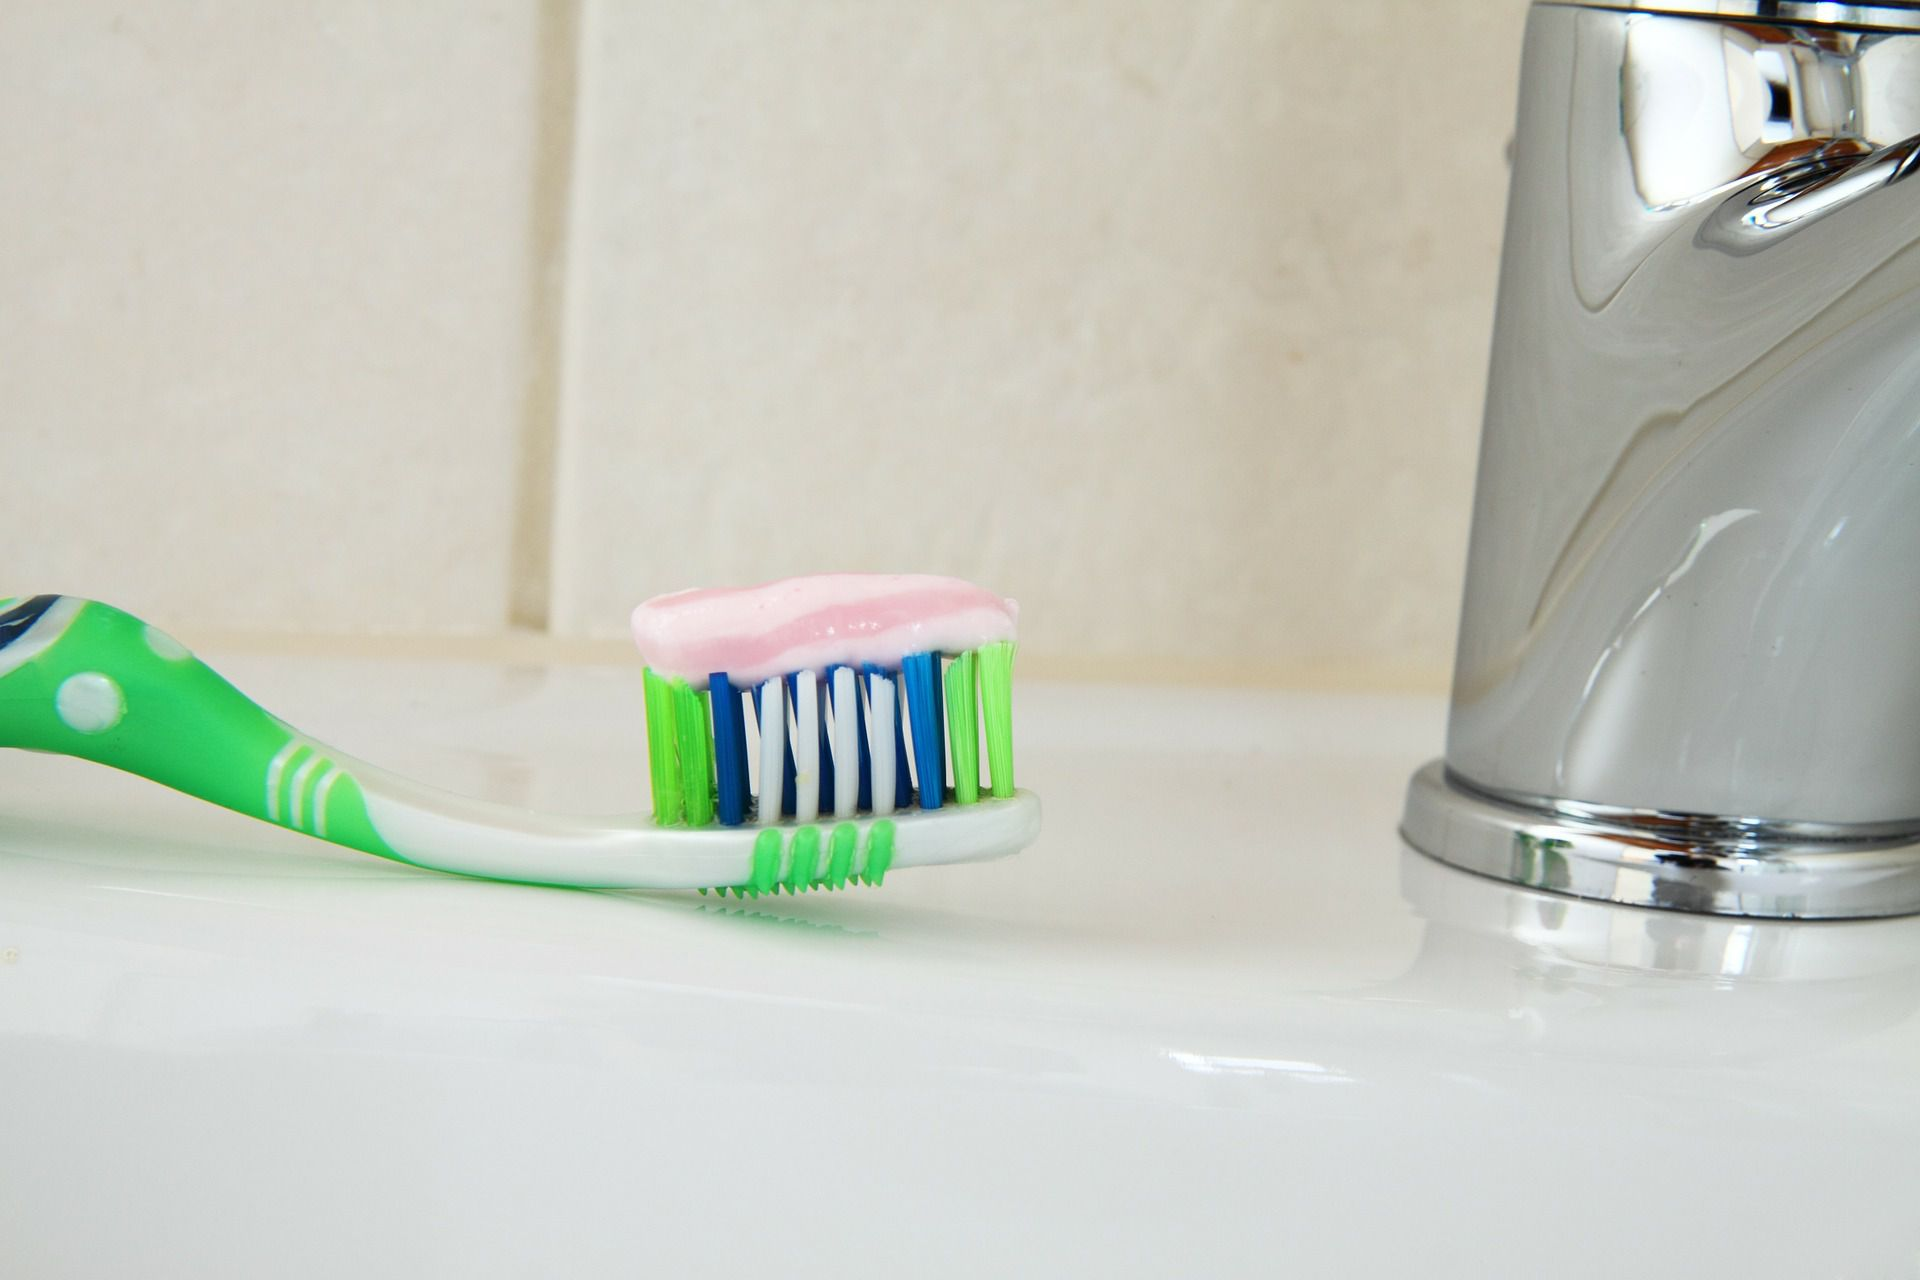 Close up of a toothbrush with toothpaste on it sitting on the sink.